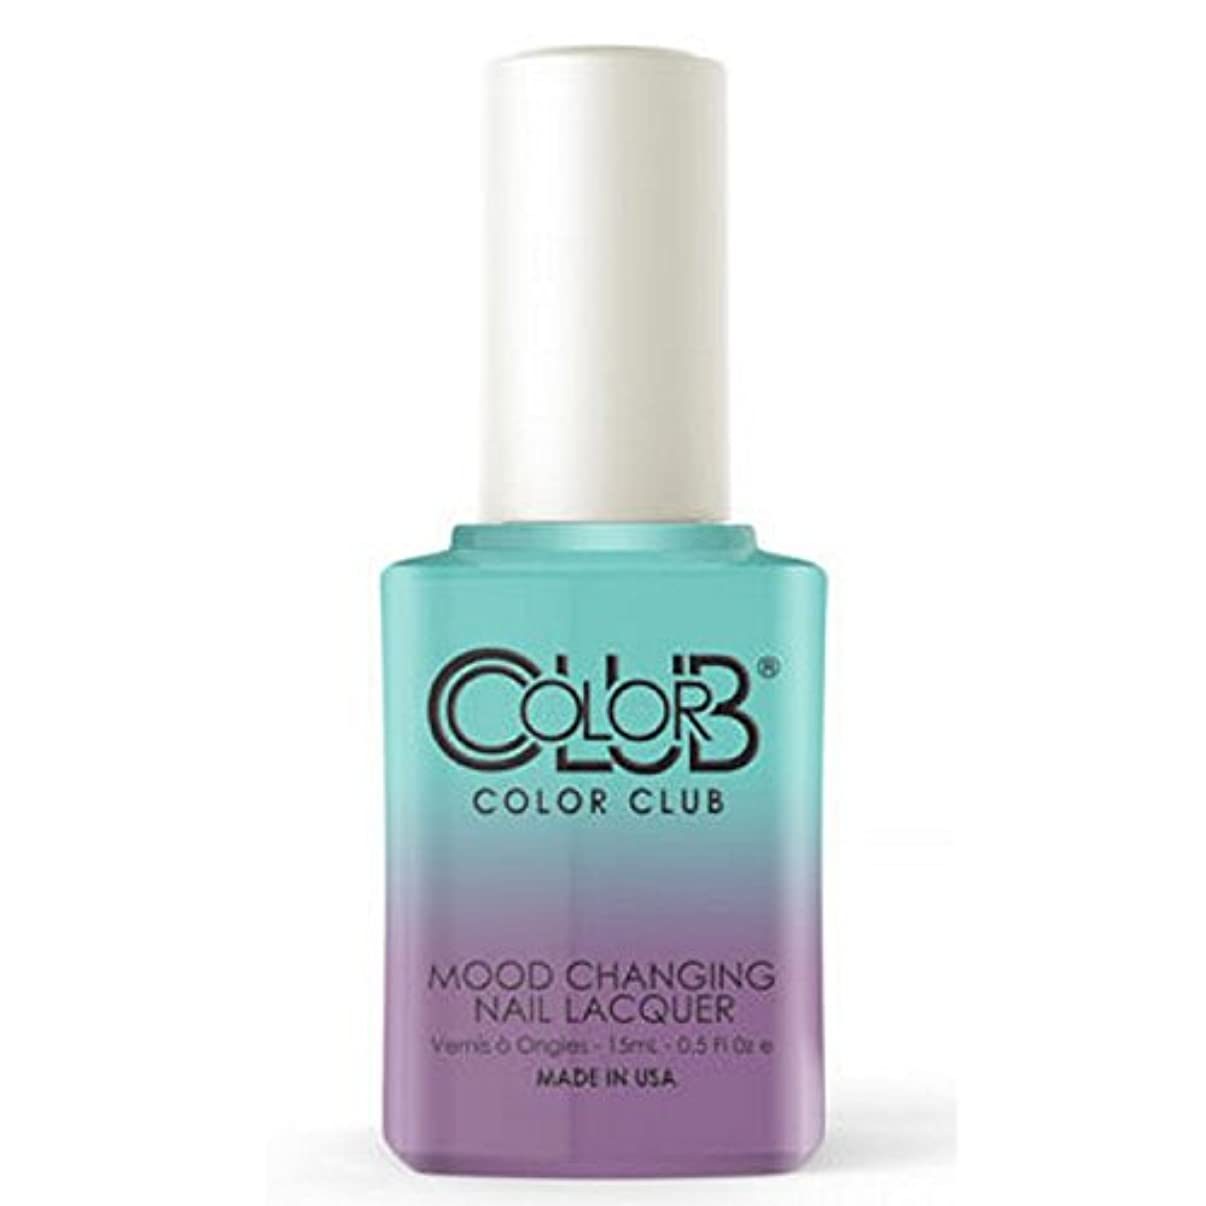 欲しいですクラッシュ閉塞Color Club Mood Changing Nail Lacquer - Serene Green - 15 mL / 0.5 fl oz